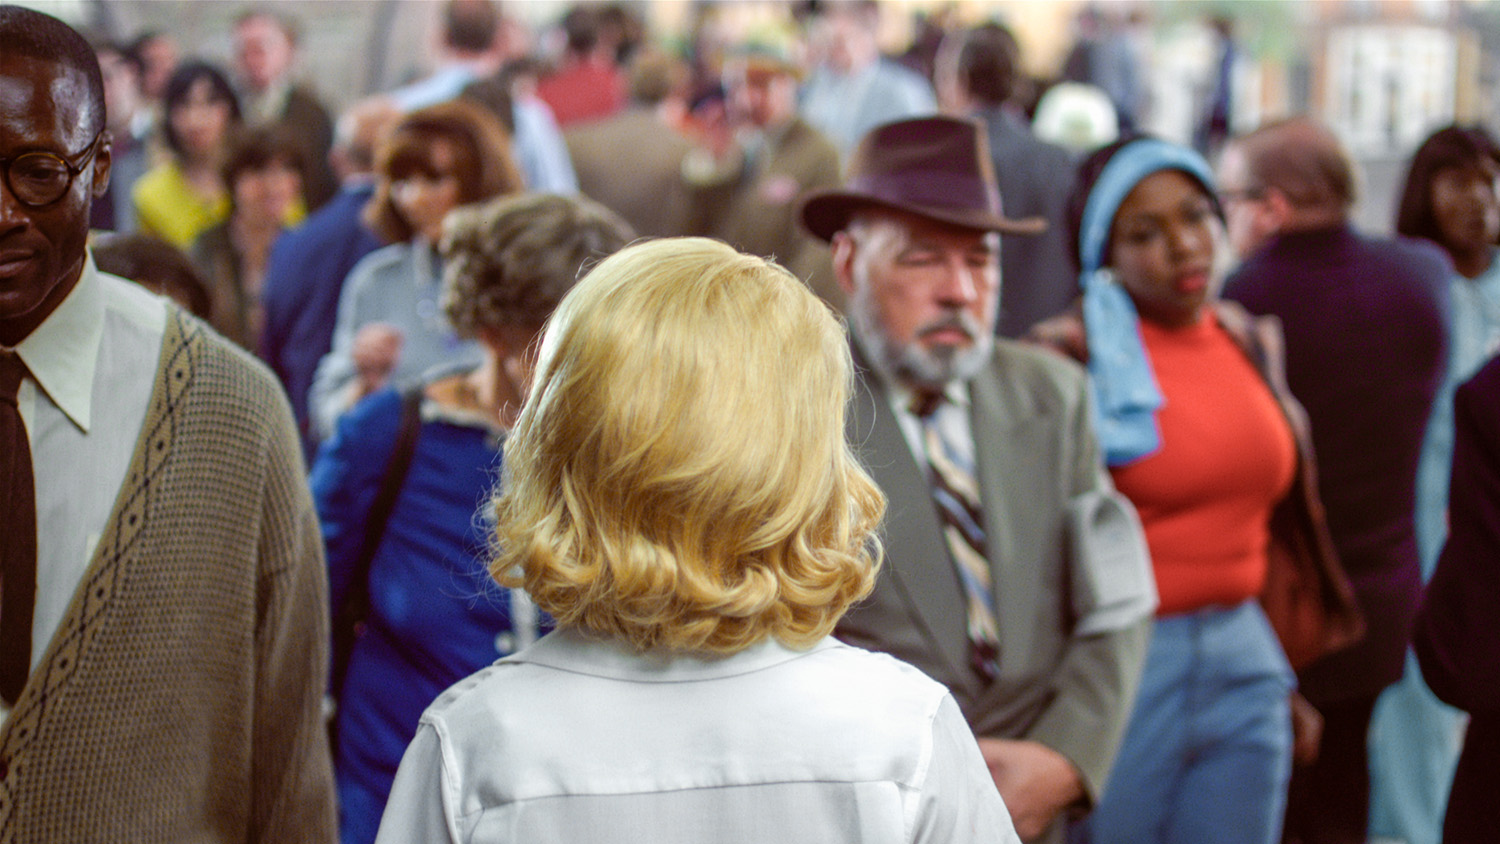 Film still from Face in the Crowd, 2013, featuring Elizabeth Banks